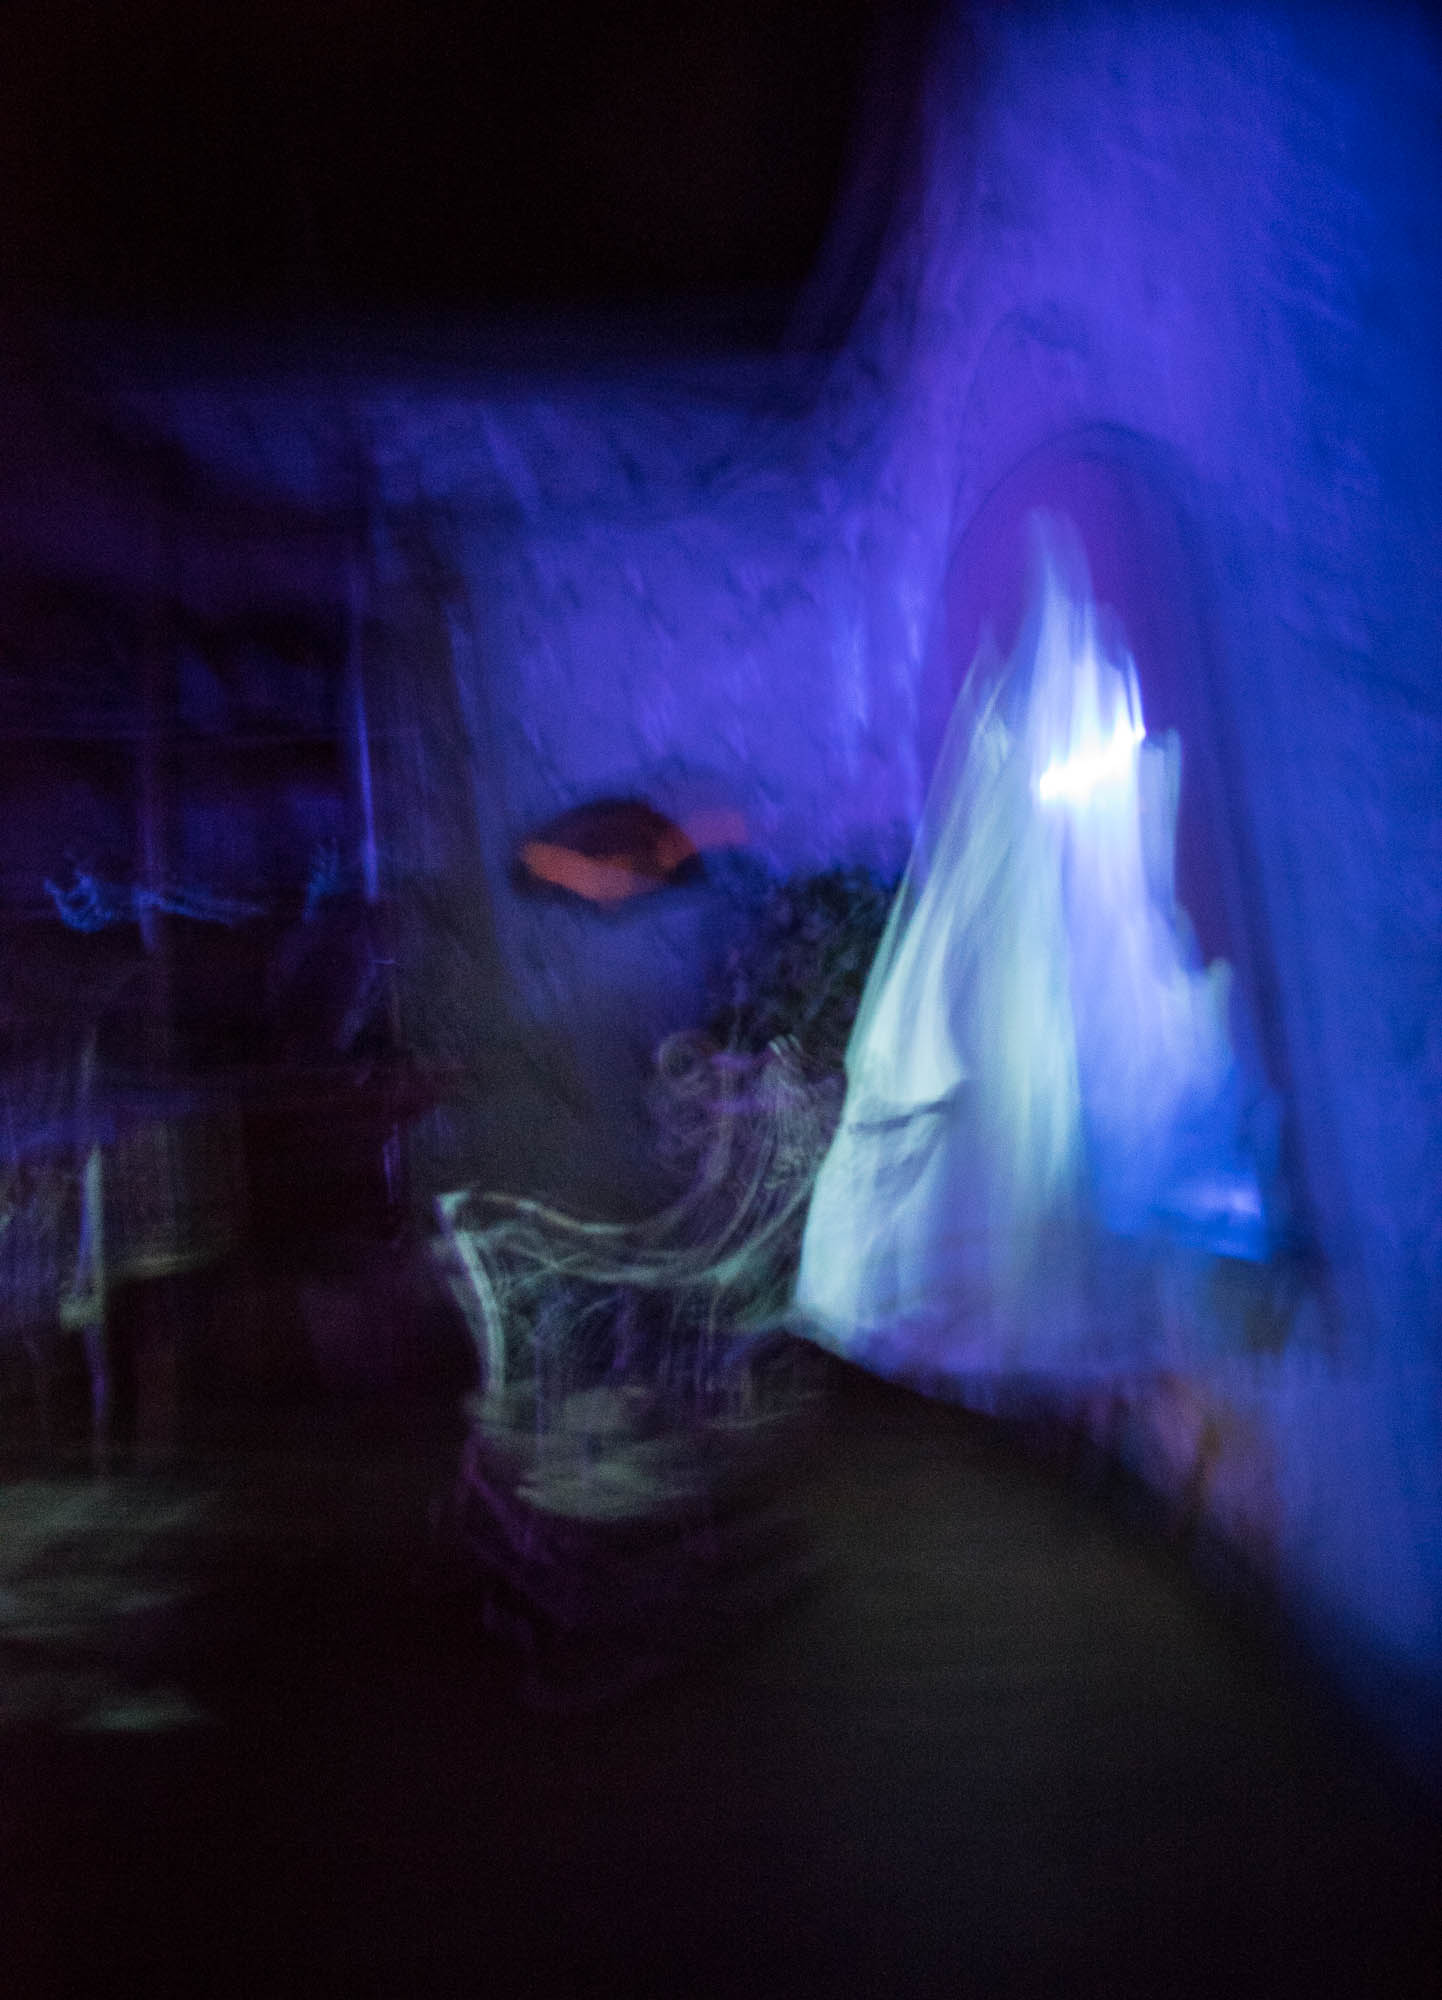 A long exposure of a ghostly figure in Disney Paris